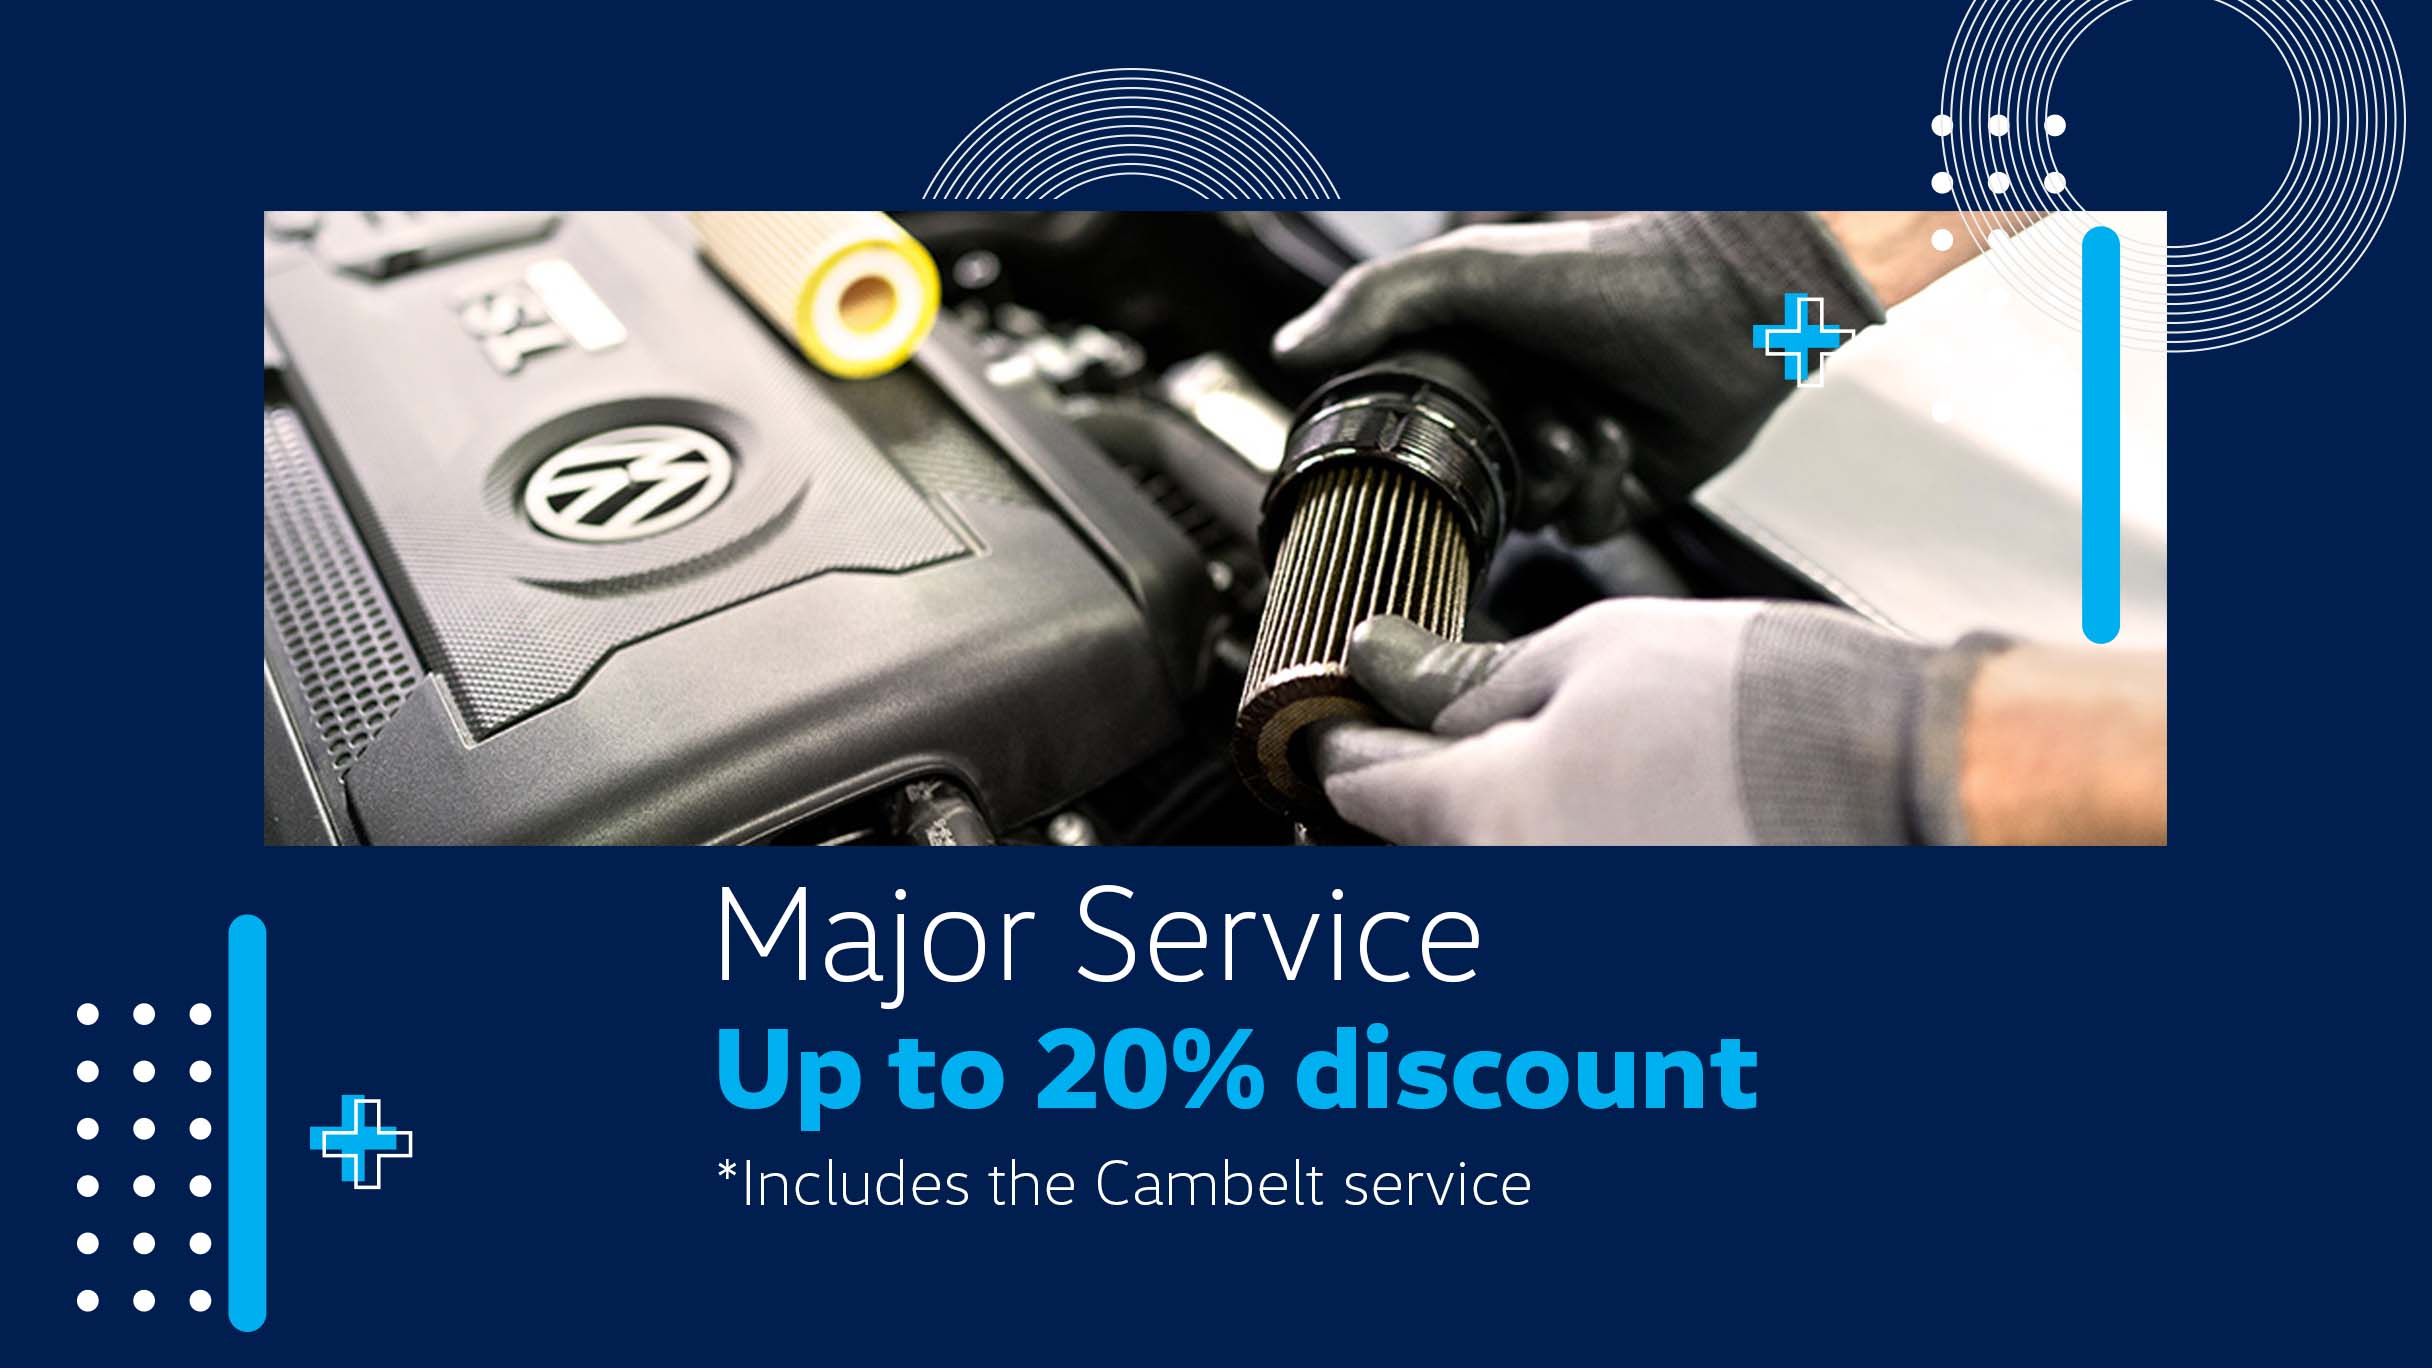 Barons Woodmead Major Service special offer